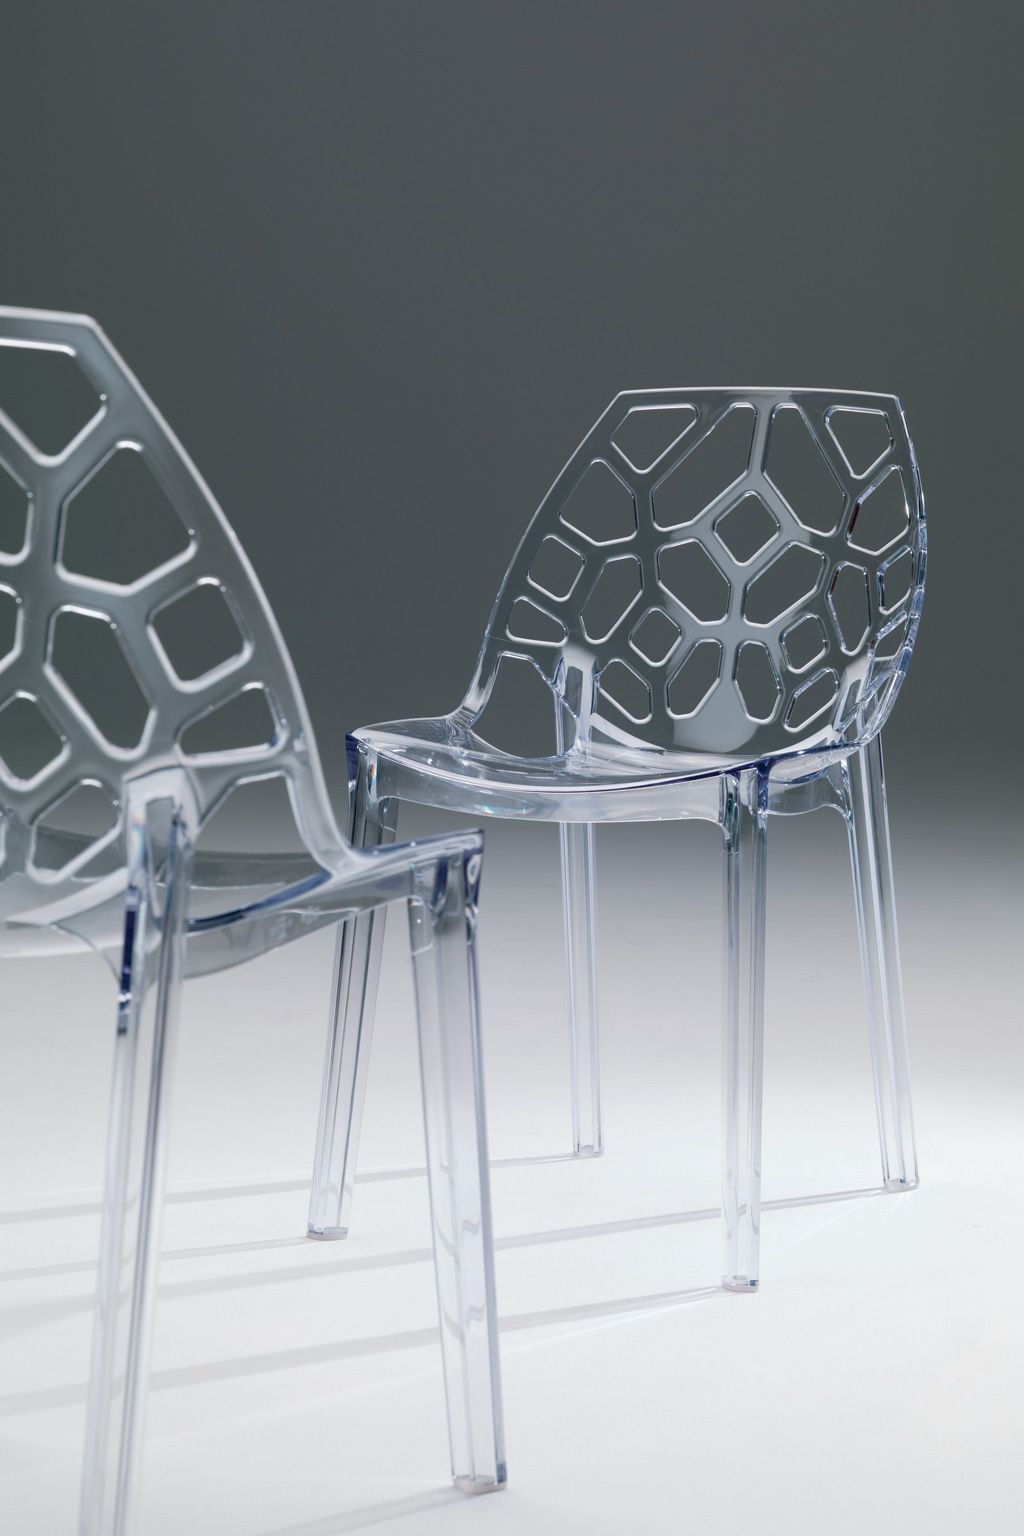 Lightweight stackable chairs - Spider Is A Lightweight Stackable Chair In Molded Recyclable Polycarbonate Designed By Erresse Studio For